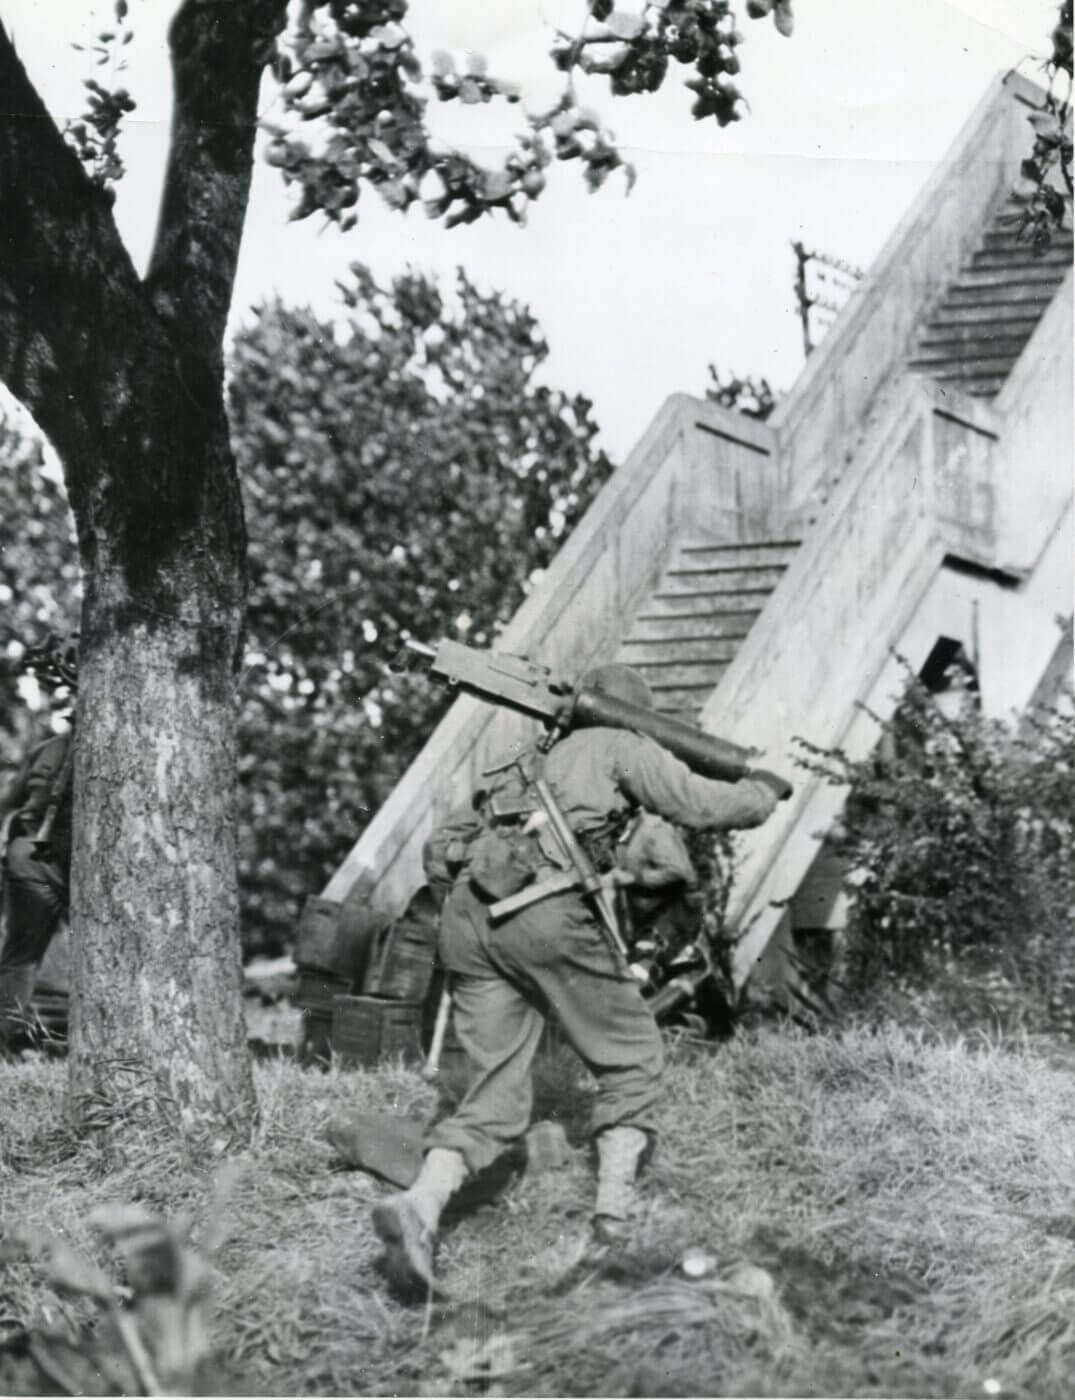 A Browning M1917 machine gunner carries a M3 SMG